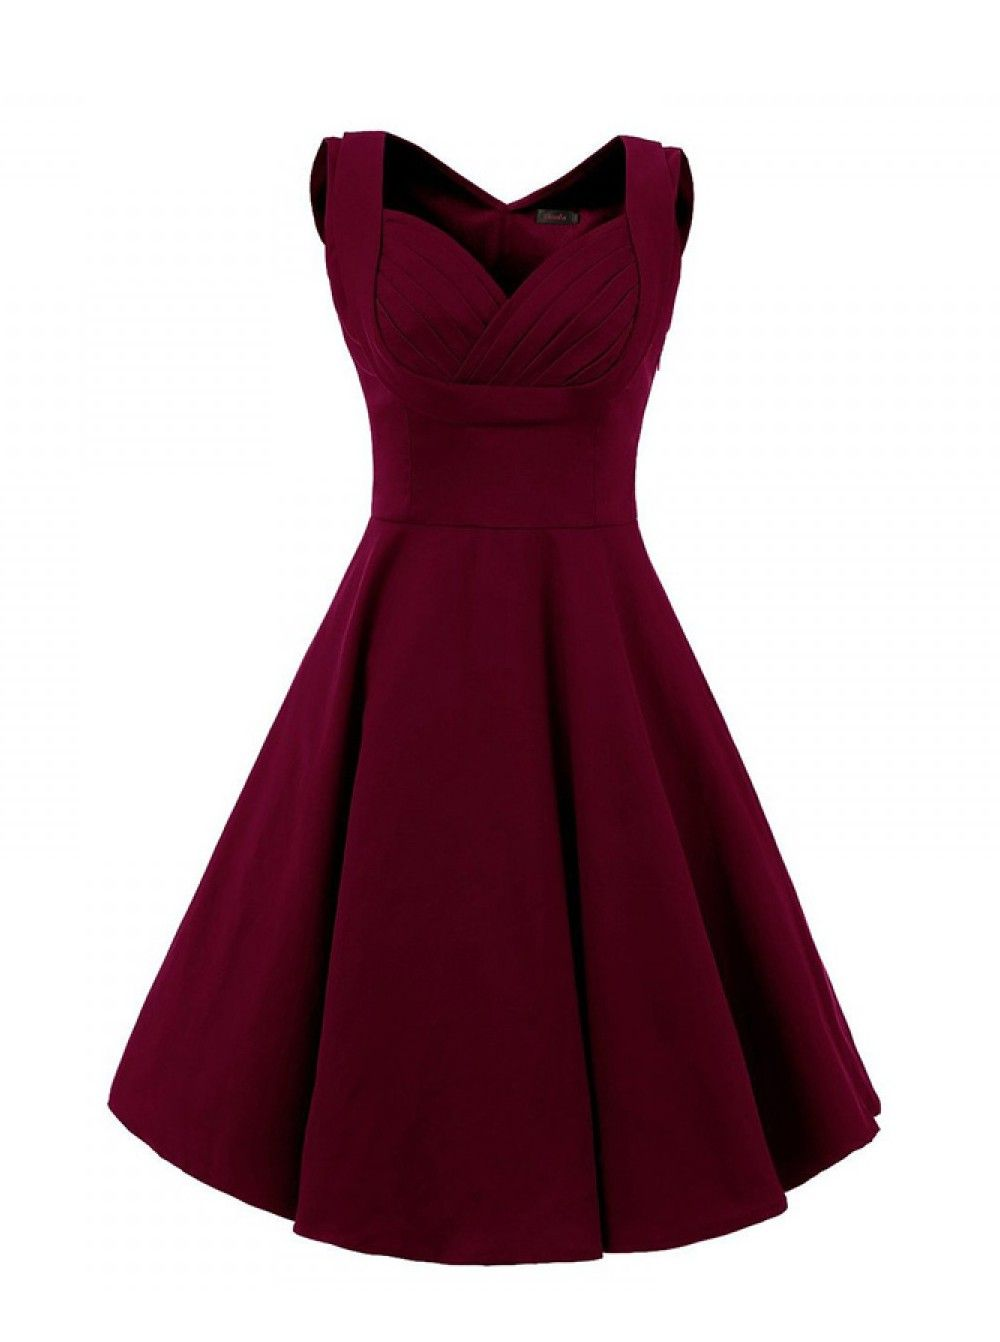 Whats my wedding dress style  Buy Women Vintage Style Square Neck Knee Length Burgundy Swing Party